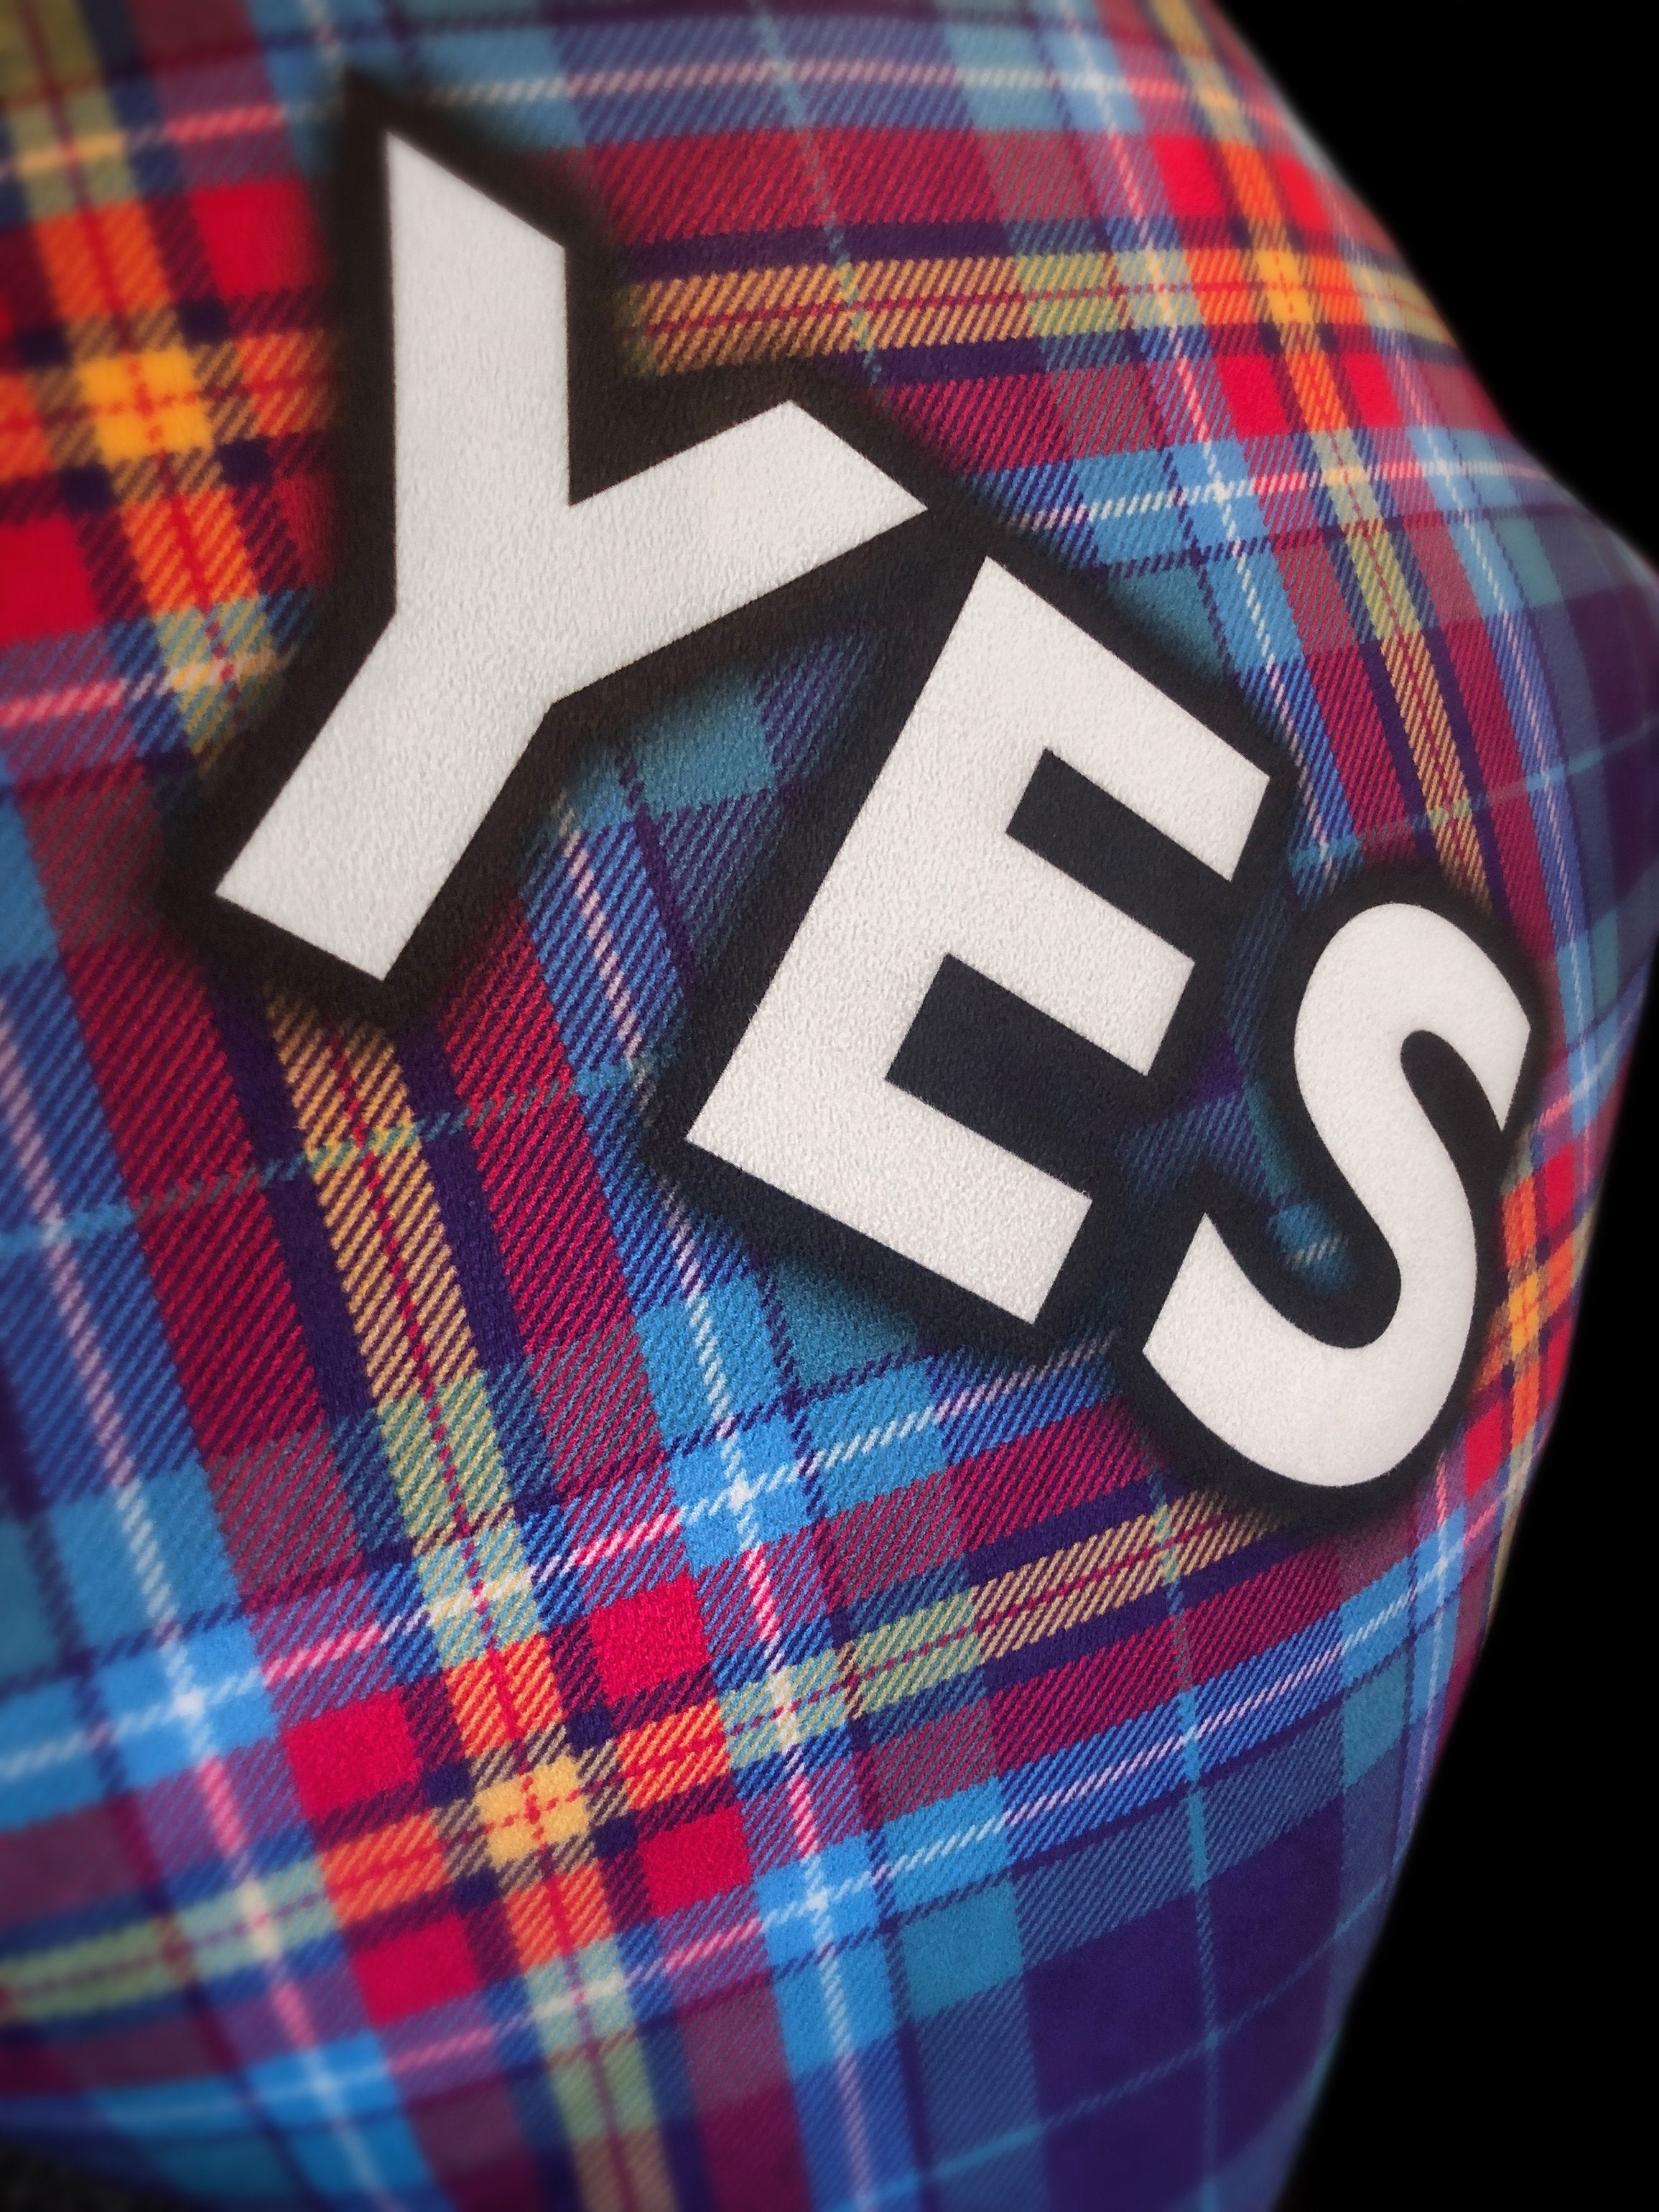 YES Tartan Cushion by the Tartan Artisan - Alba gu bràth